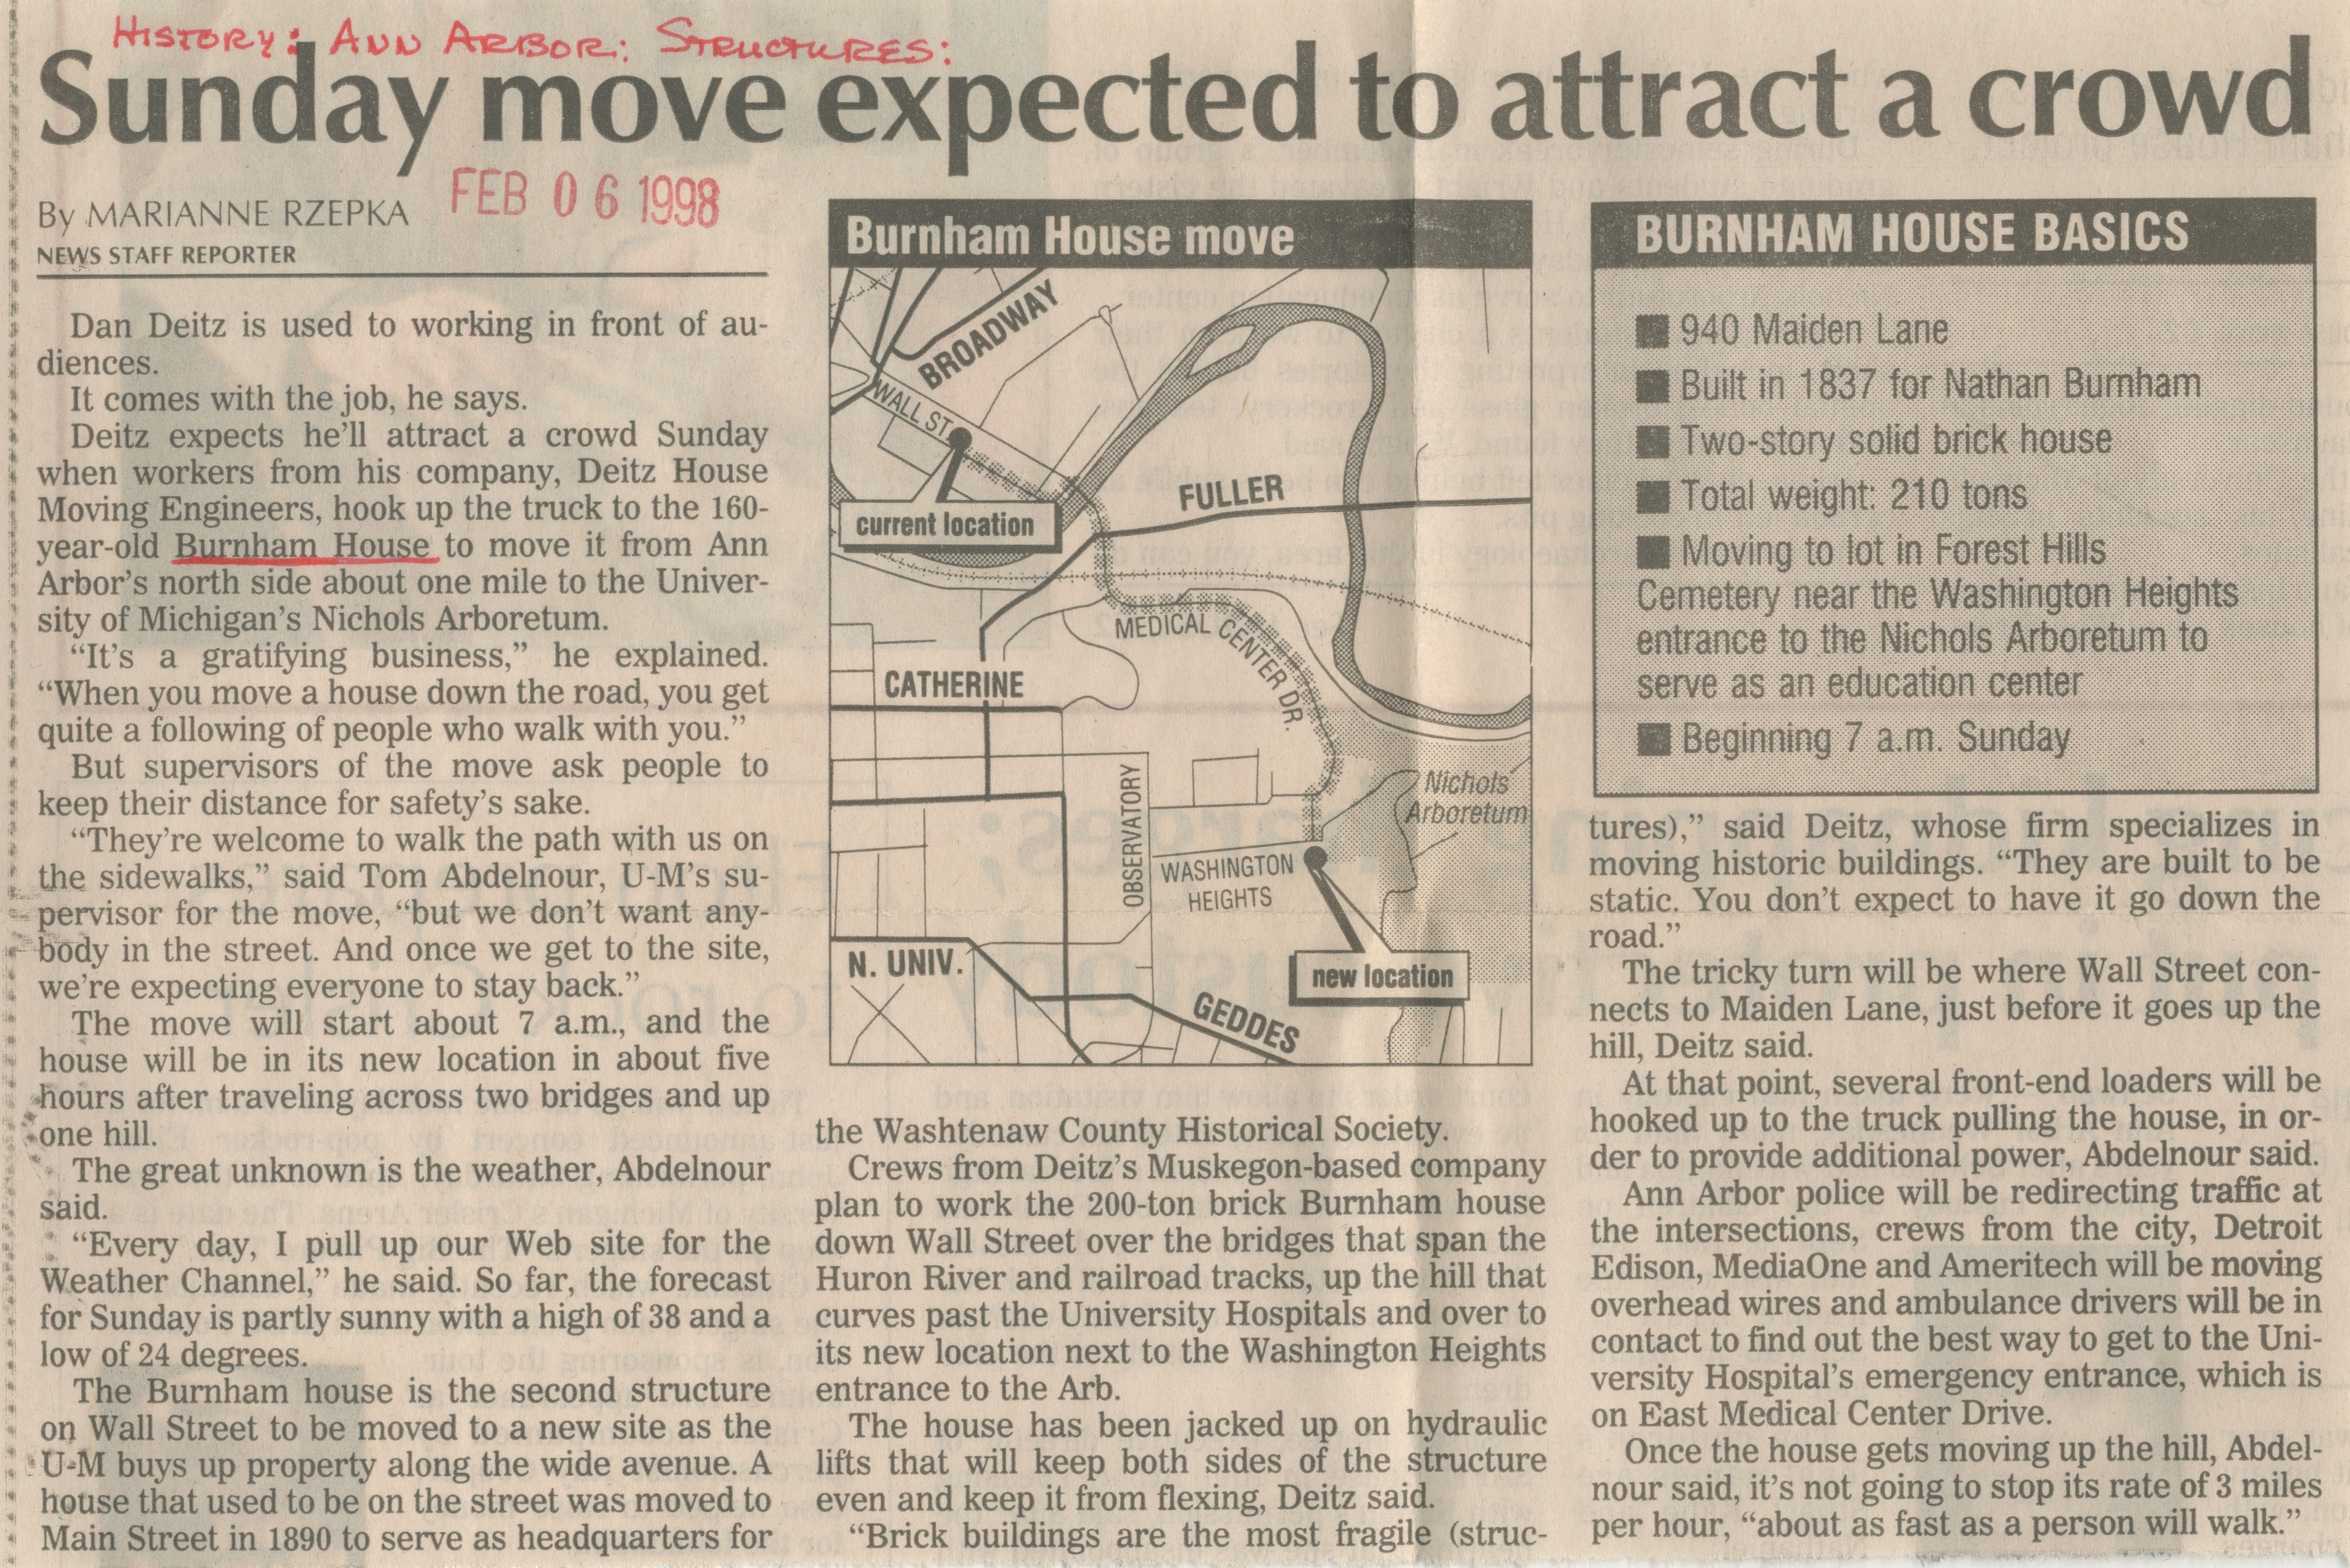 Sunday move expected to attract a crowd image